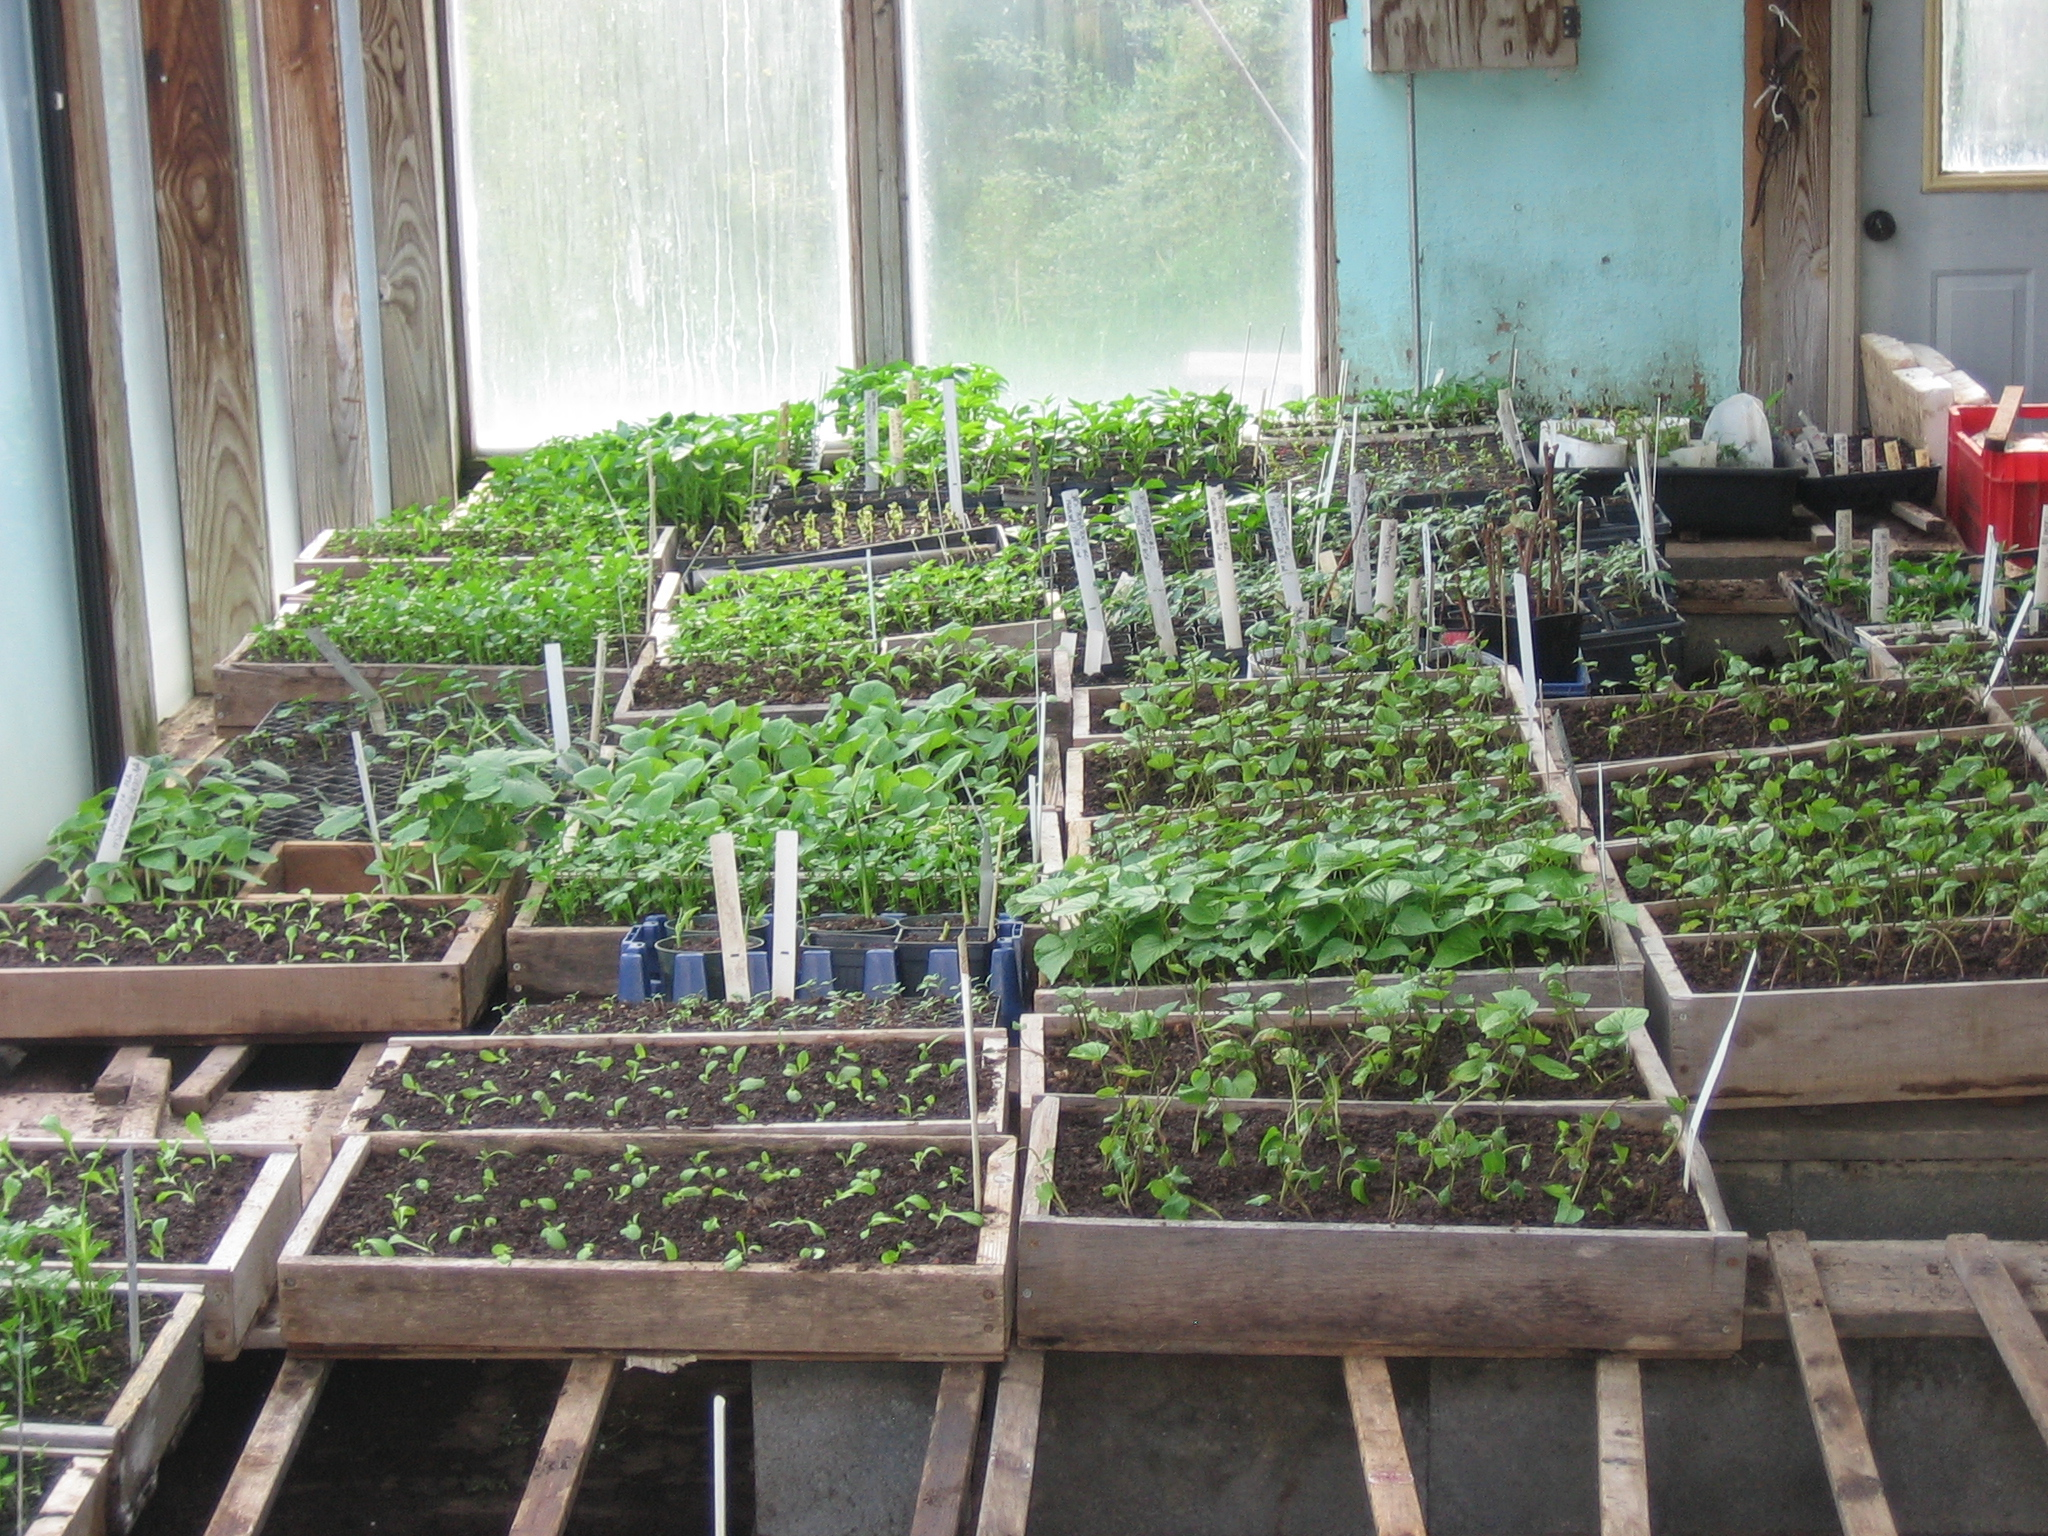 Greenhouse Interior With Early Spring Seedling Flats.Photo Kathryn Simmons